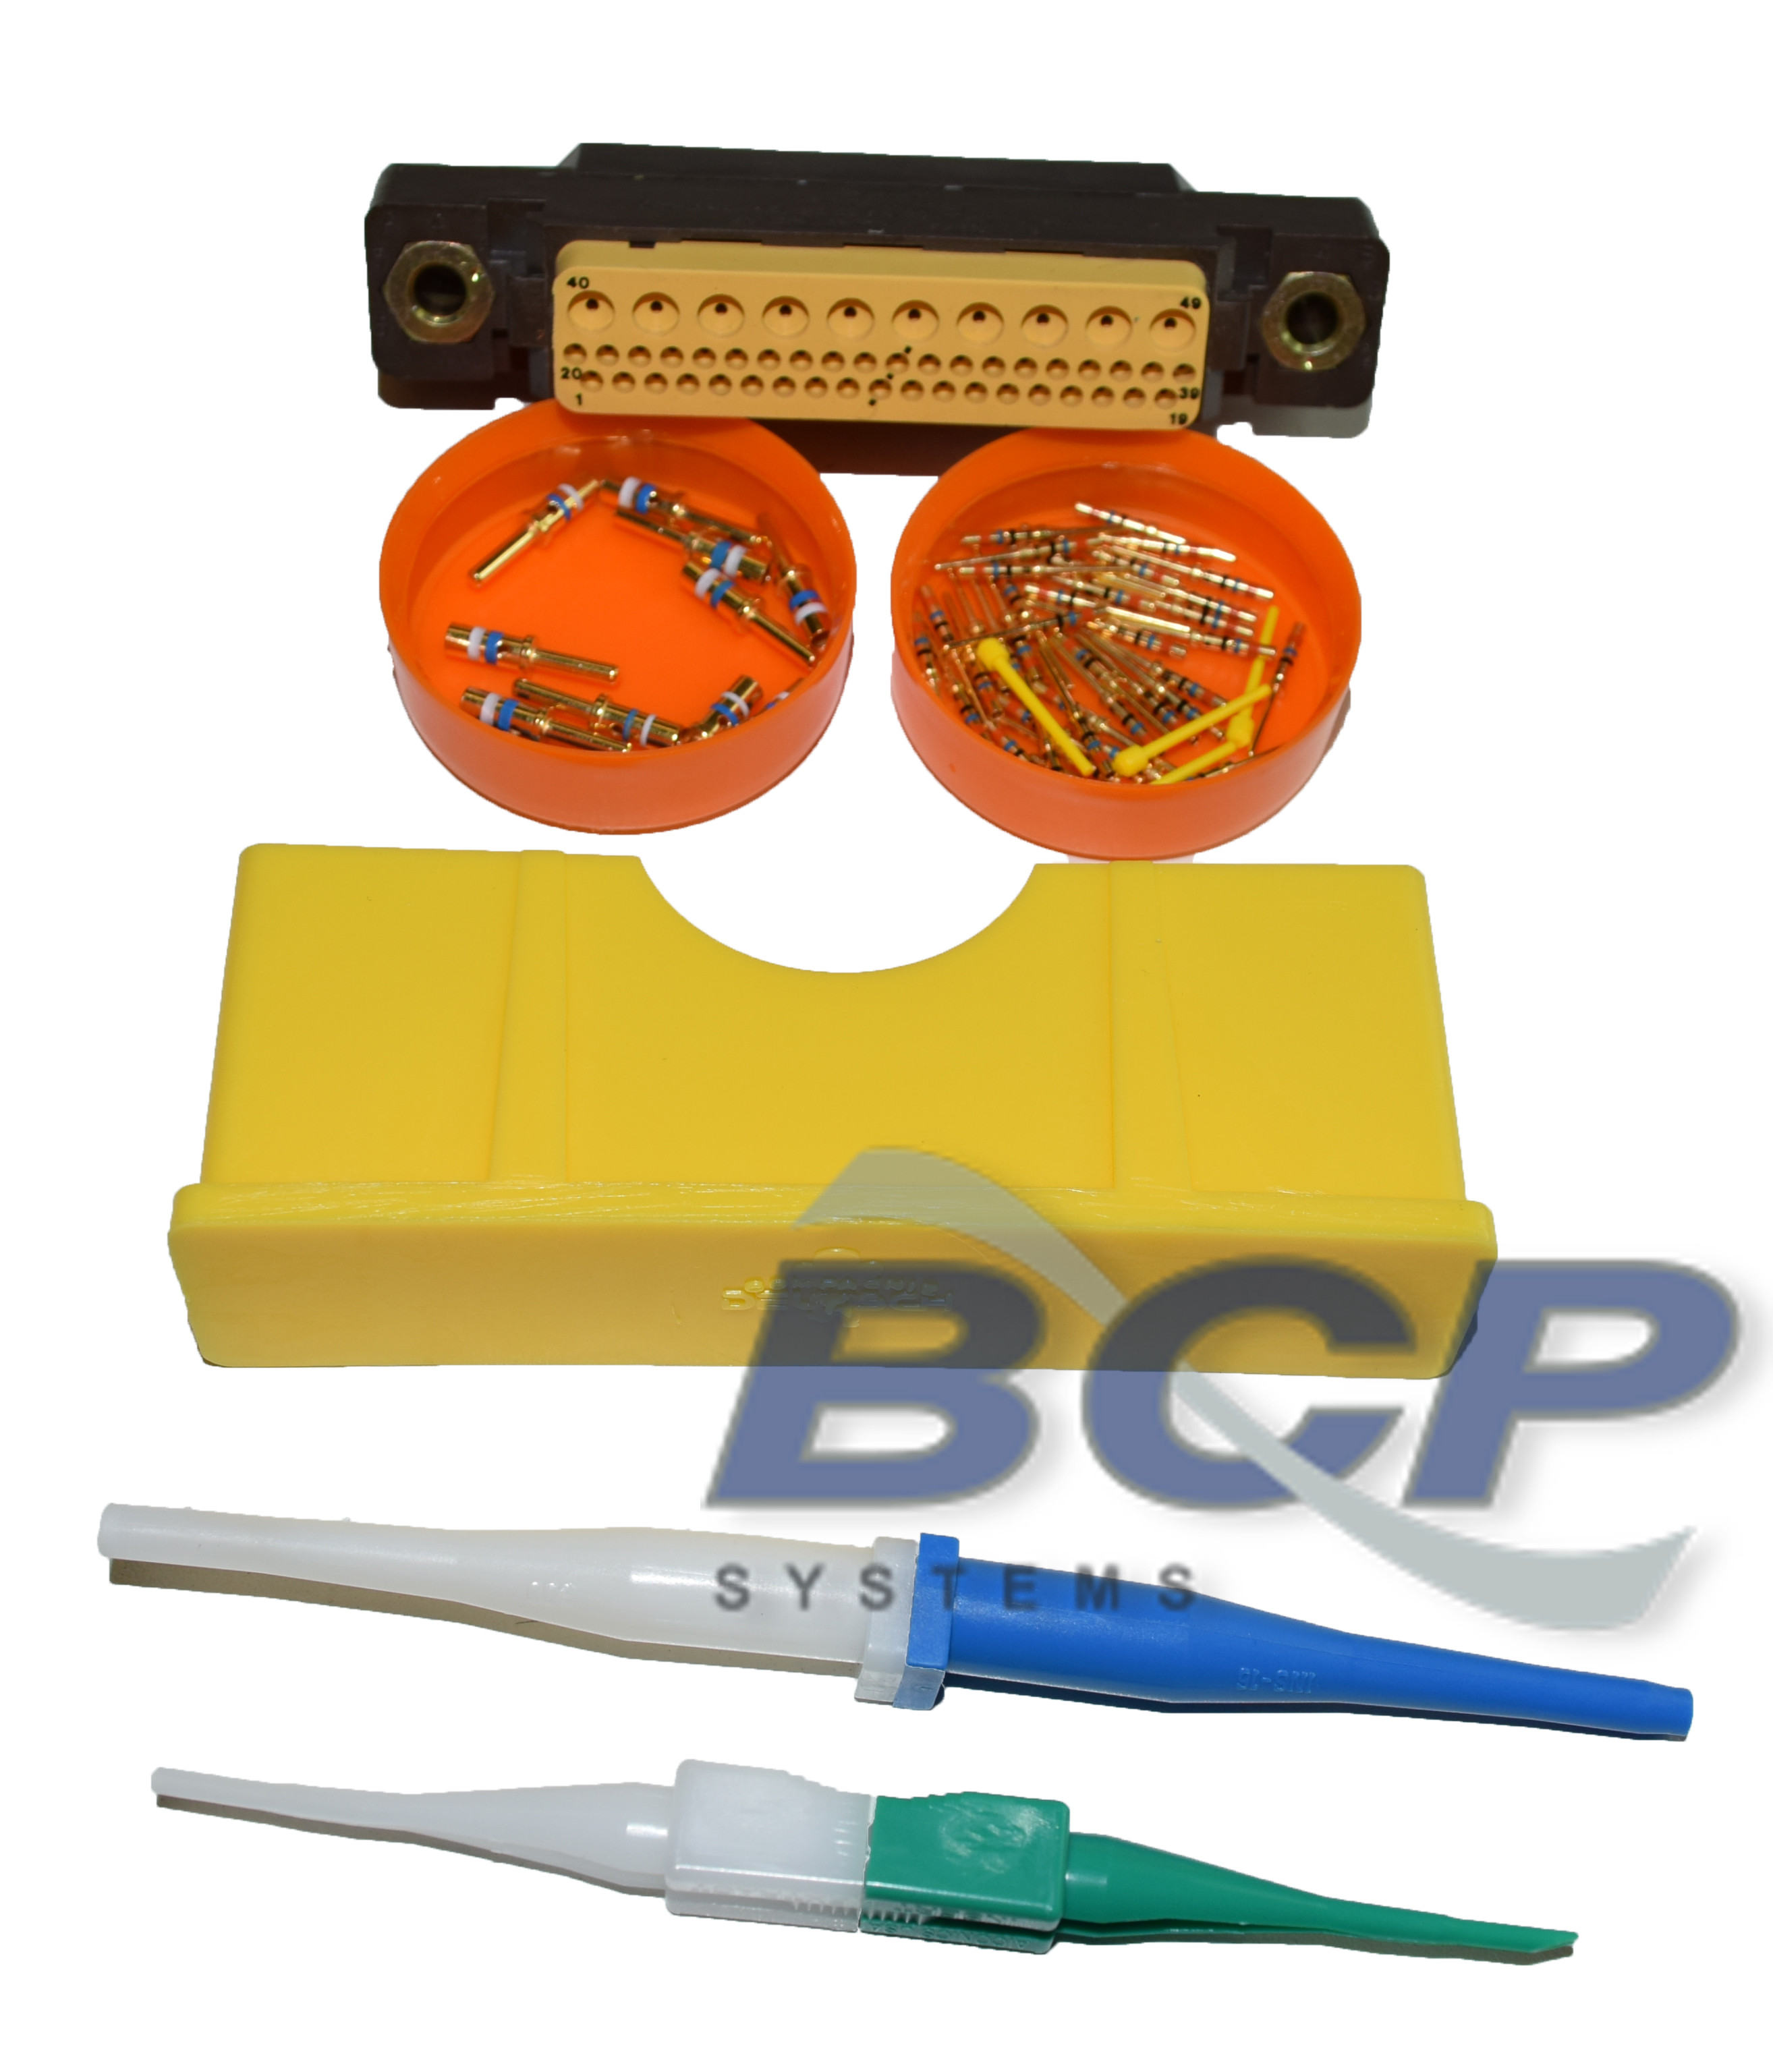 Bcp Systems Specialized Wire Harness Assembly And Repair Services Pin Tool For The Aerospace Medical Oil Industries